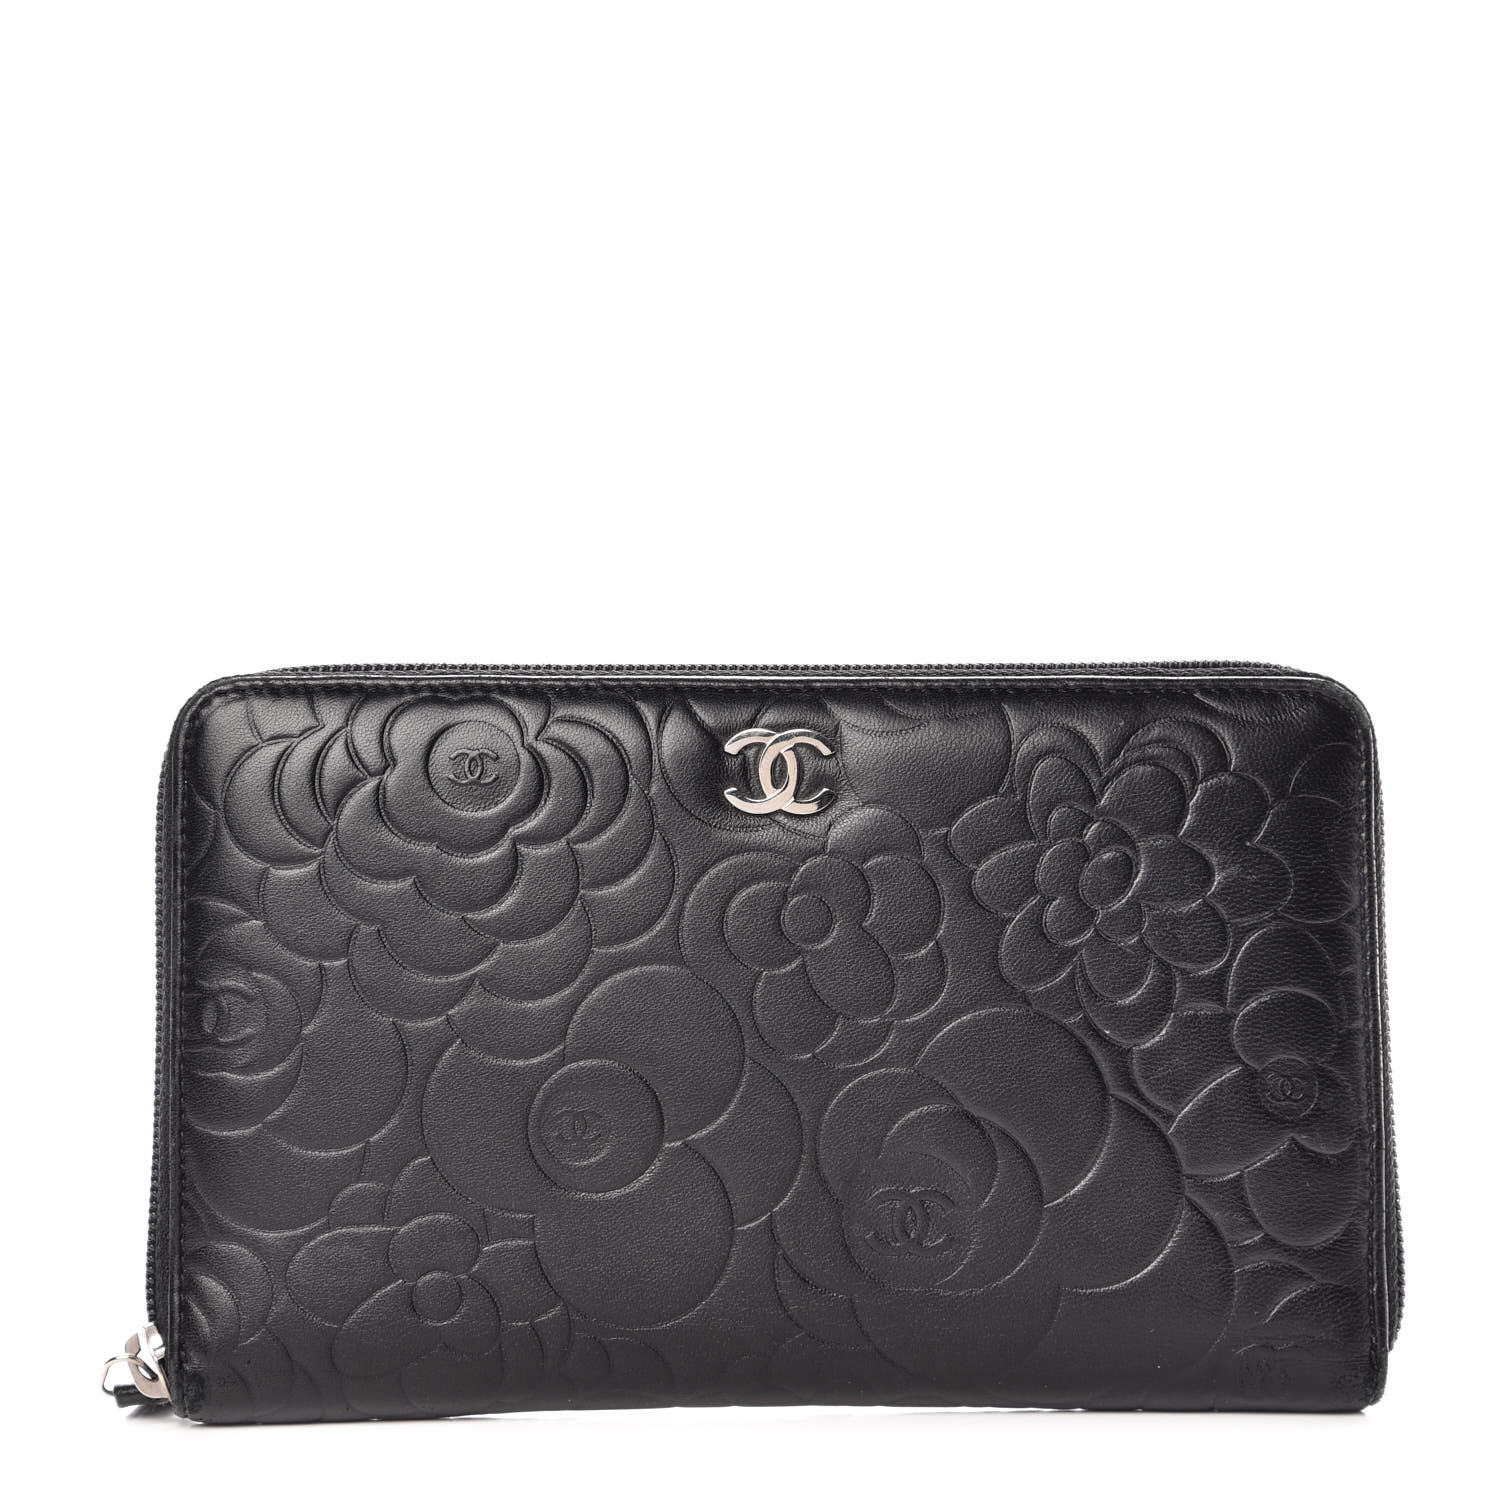 1d653154 CHANEL Lambskin Camellia Embossed Zip Around Organizer Wallet Black